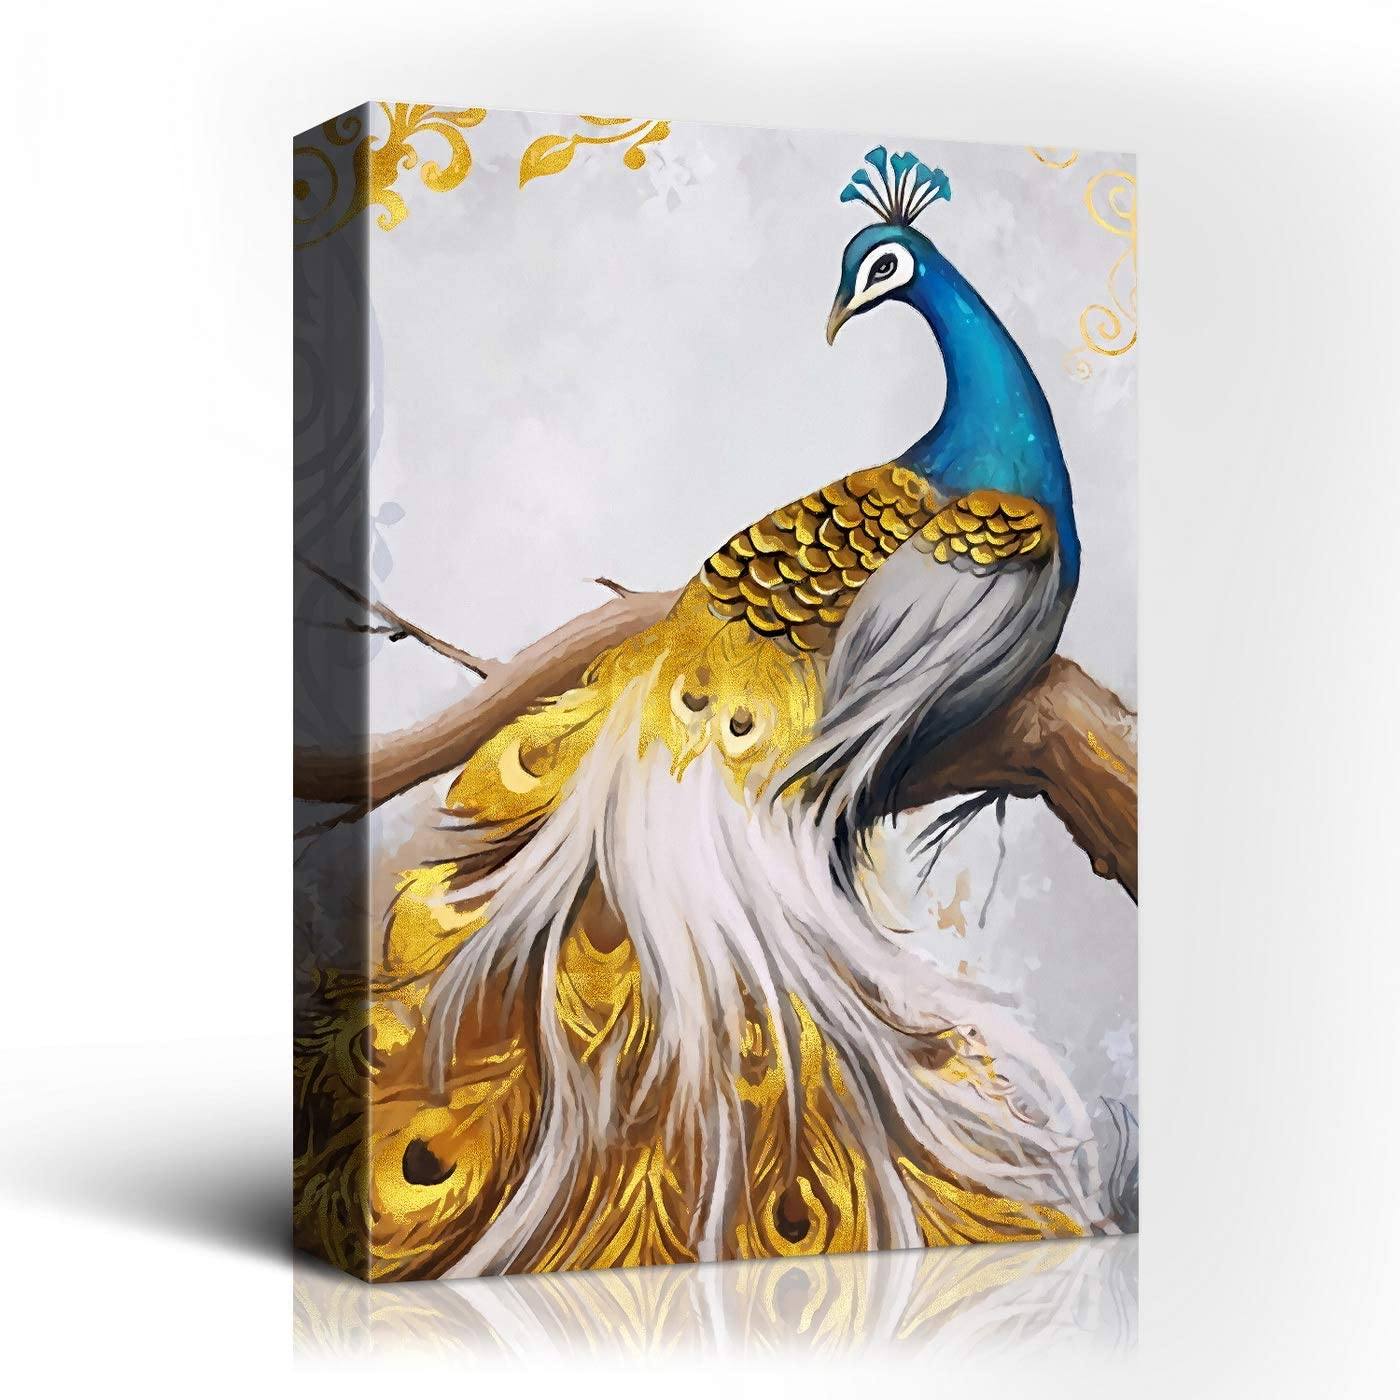 Laoife-20x30 Inches Blue Peacock and Golden Feather Tail Animals Artwork Giclee Print Canvas Wall Art Decor for Living Room,Bed Room,and Hotal